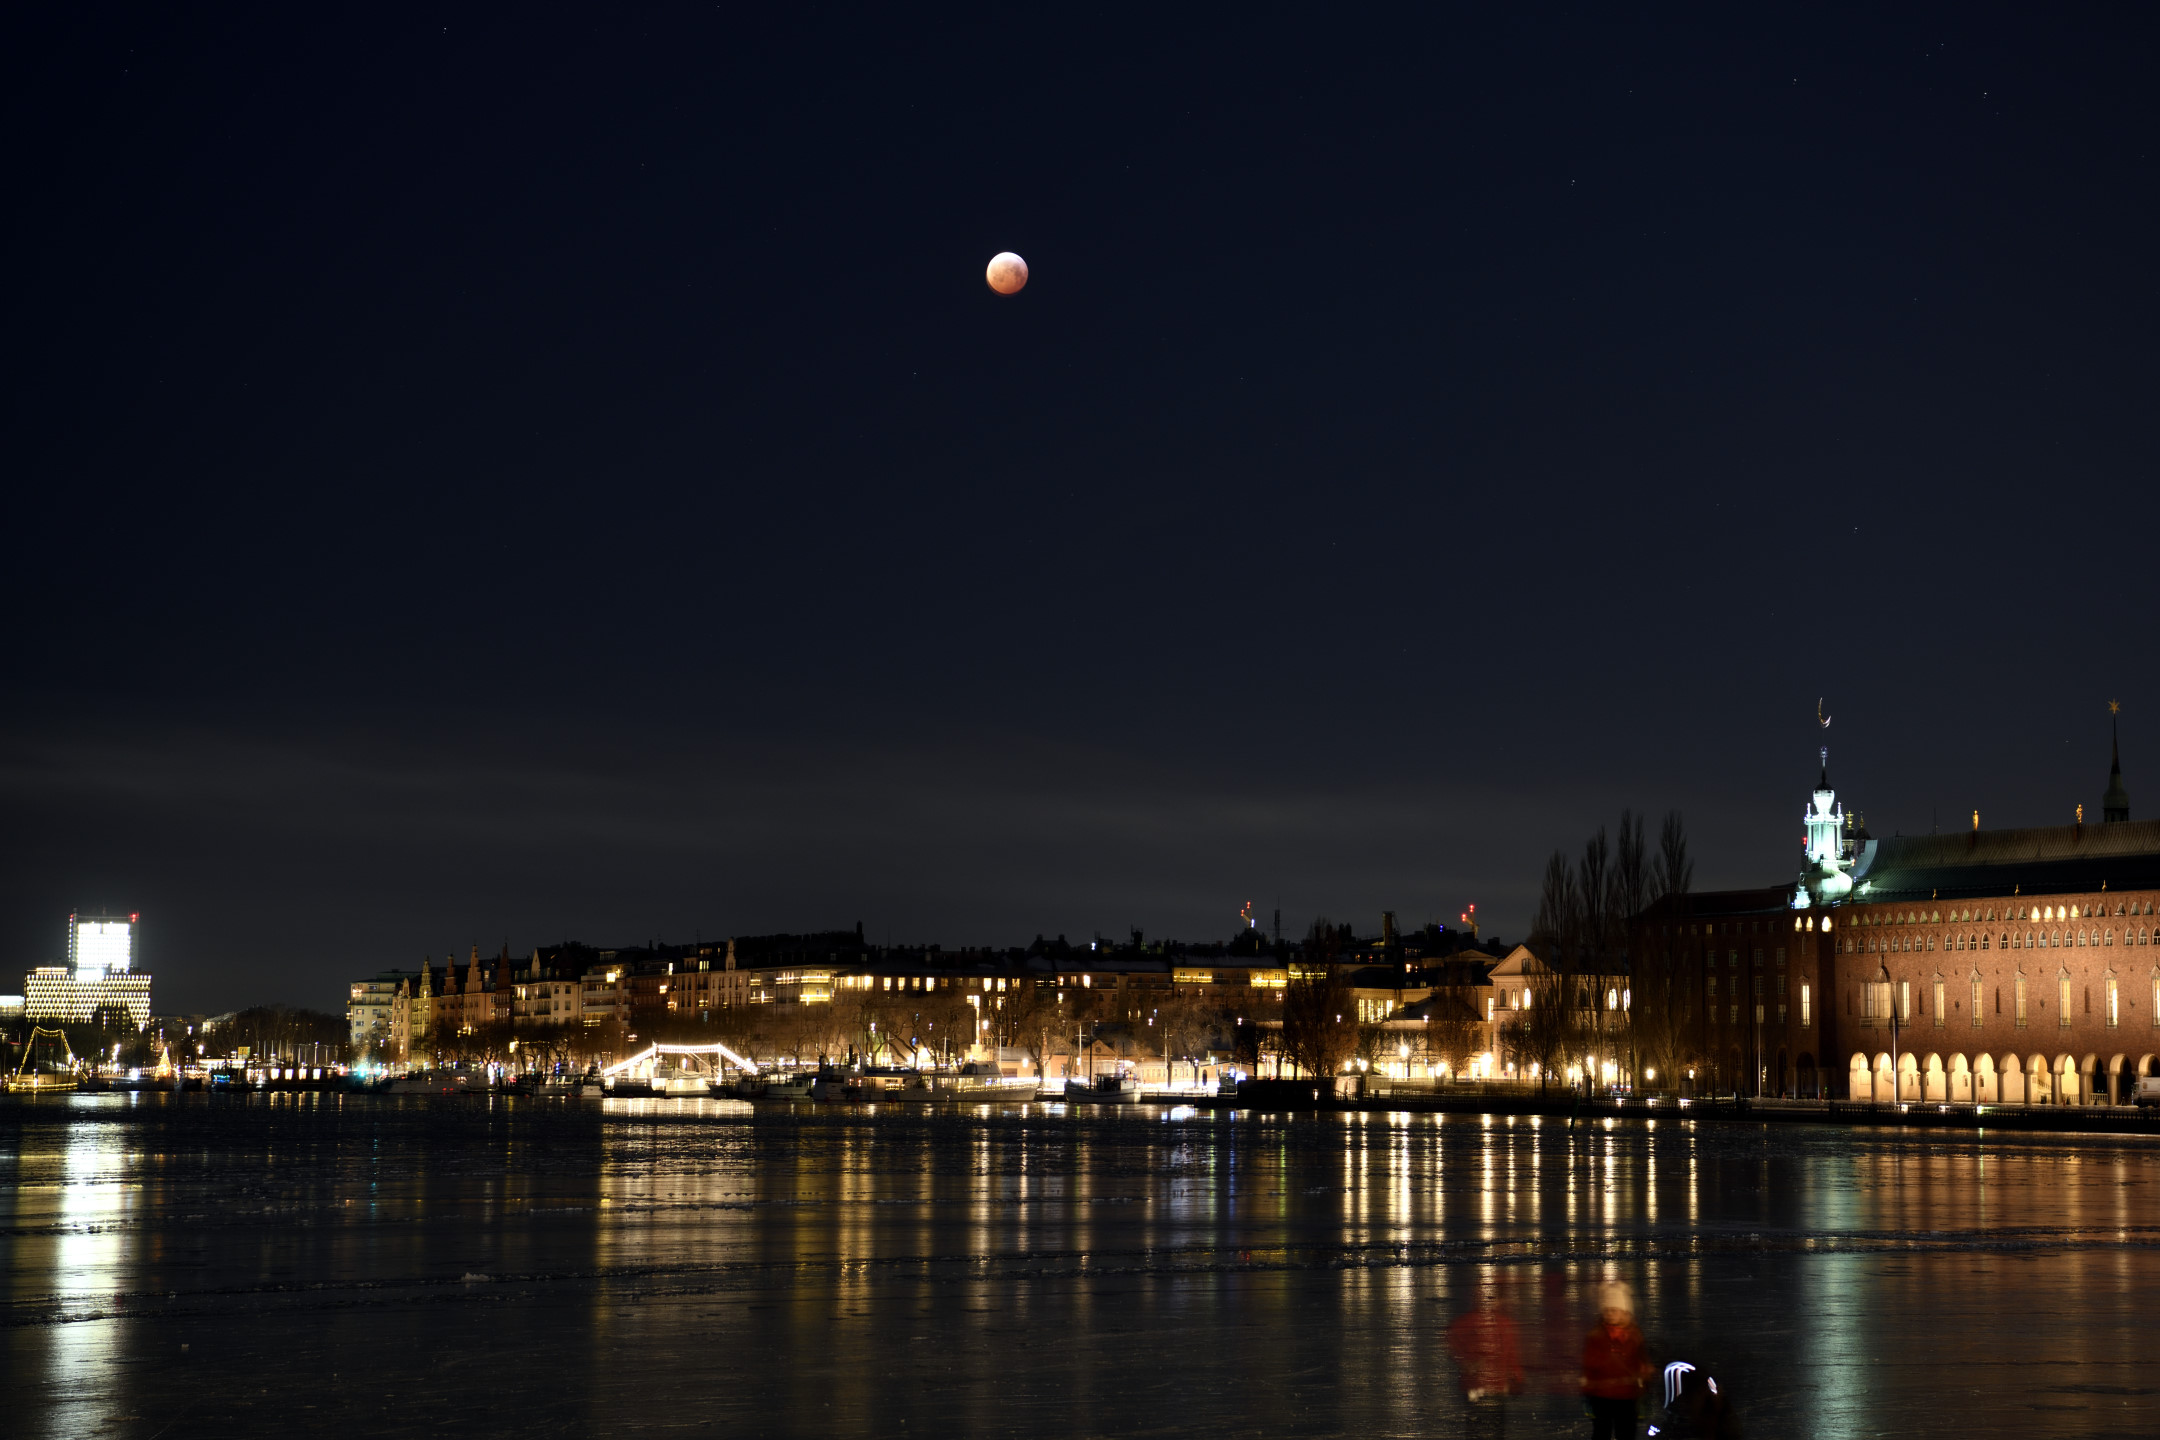 Lunar Eclipse January 2019 by Magnus Norden